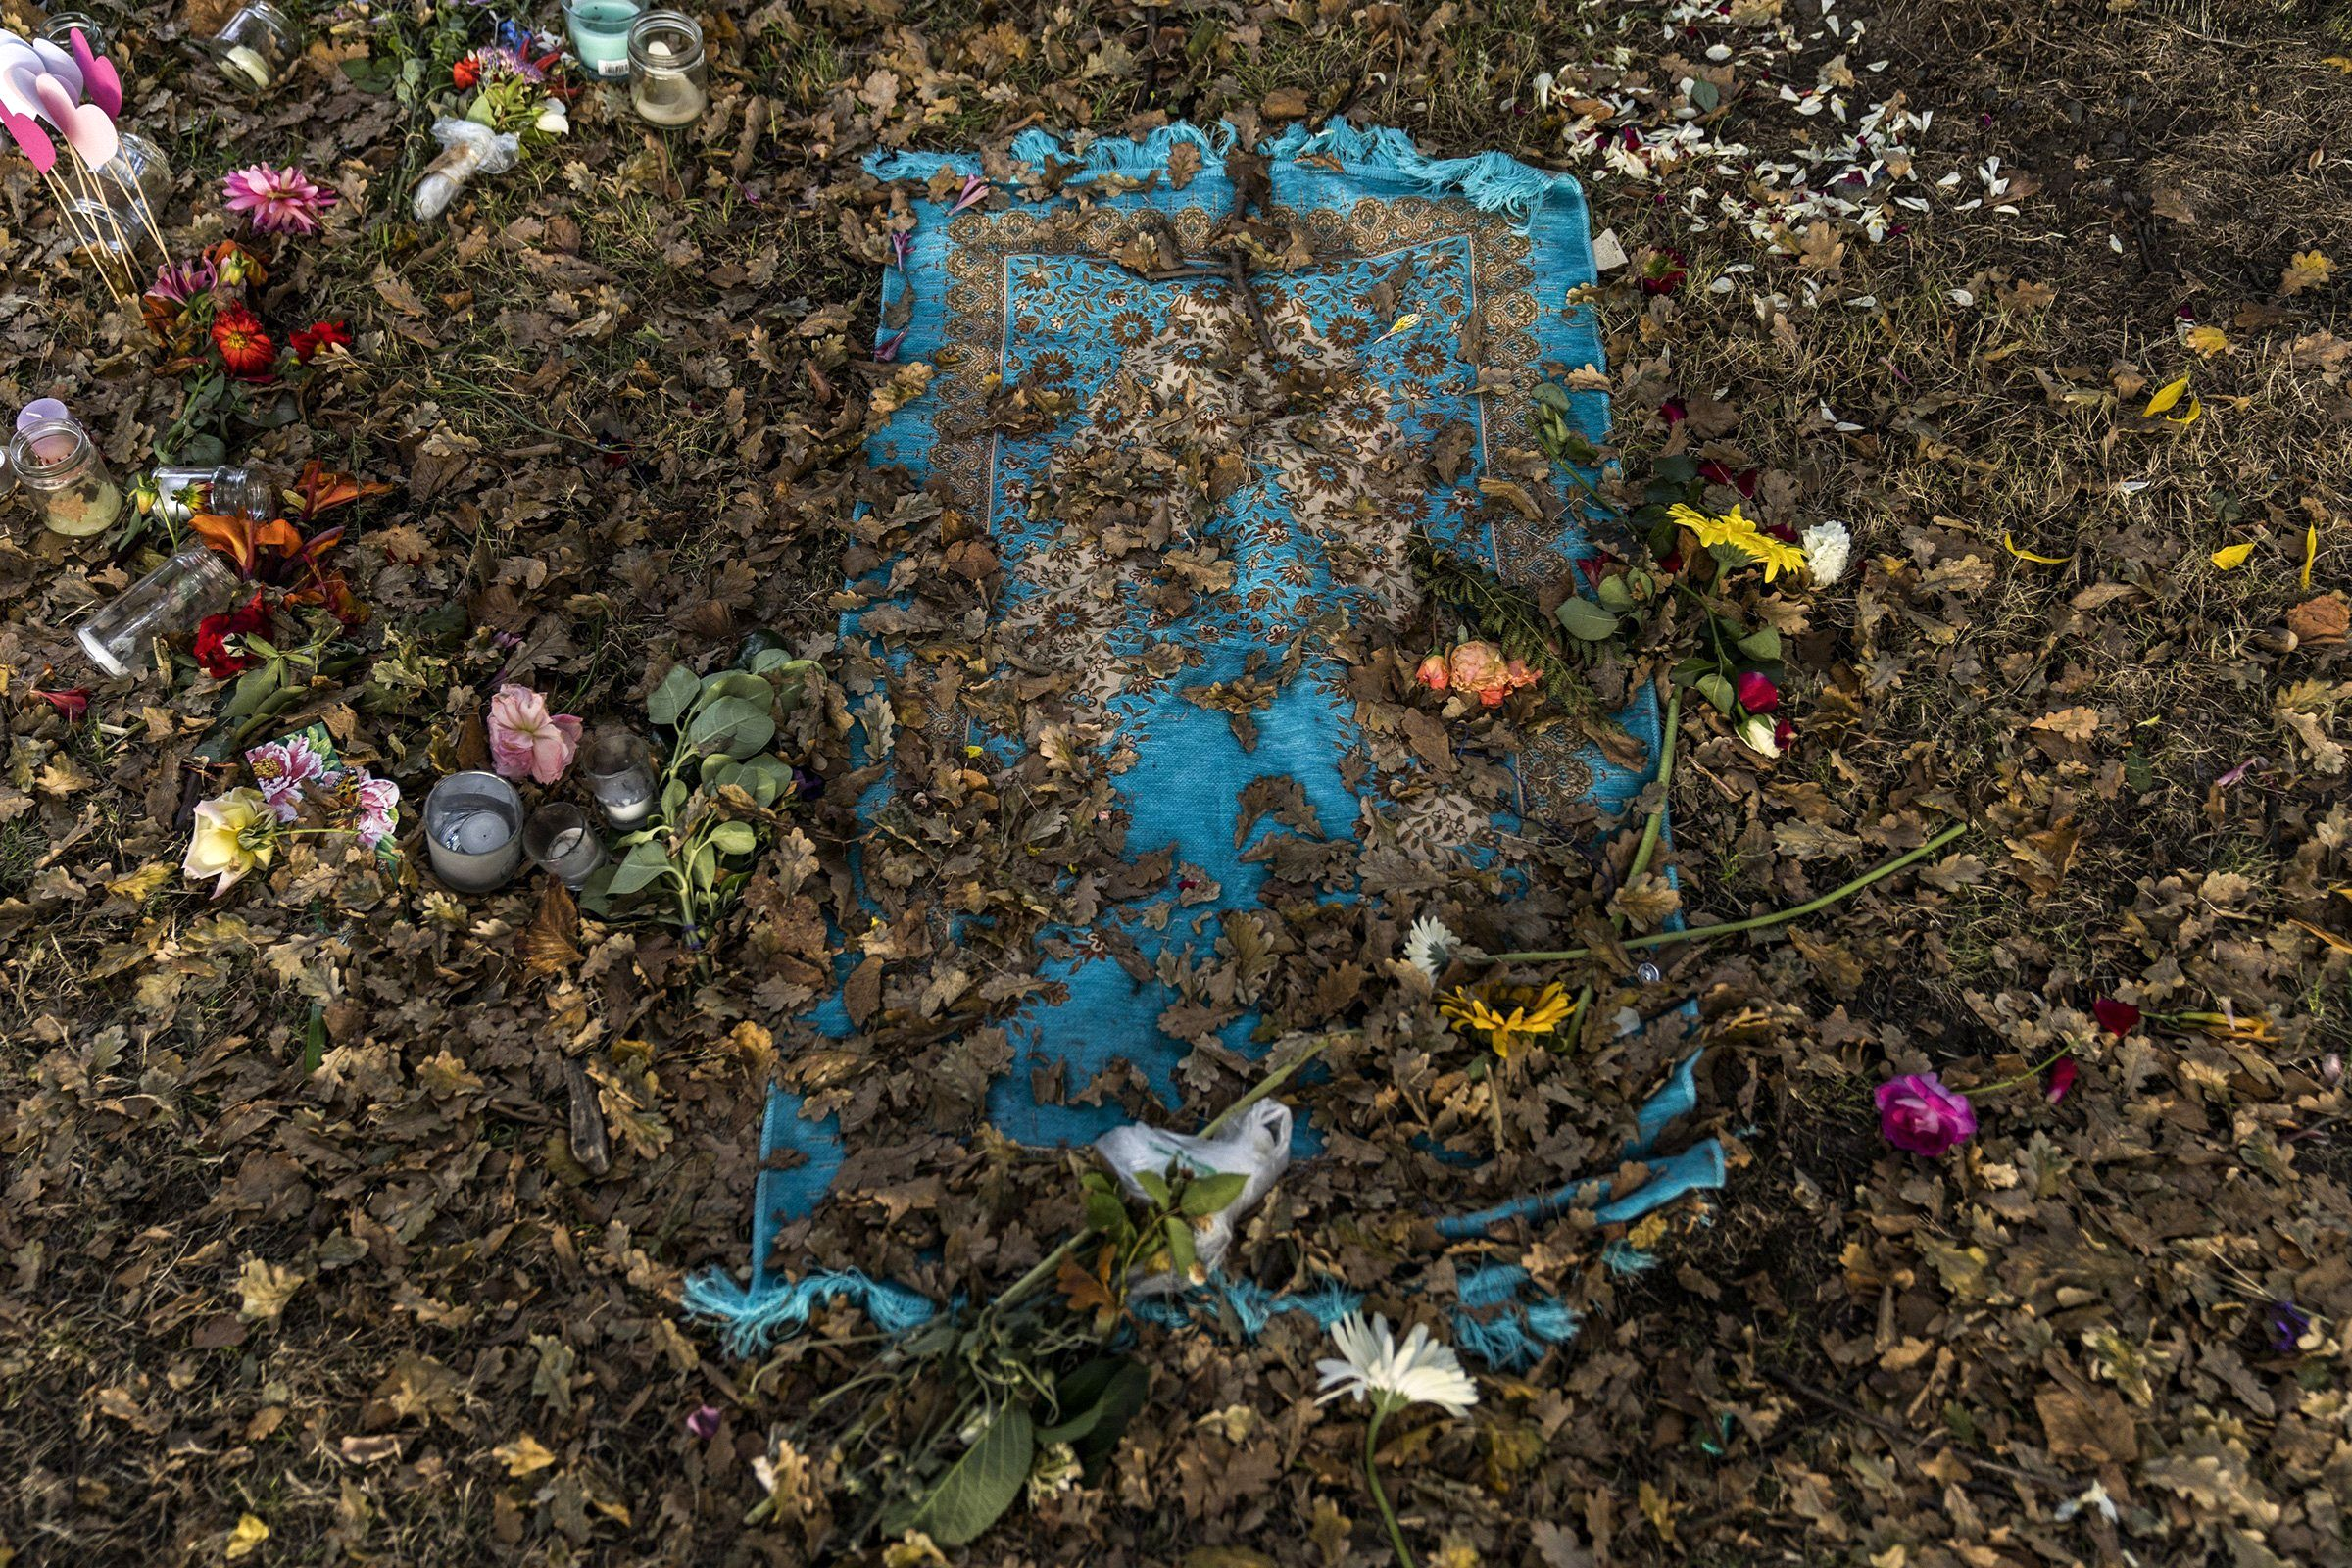 A prayer mat is seen amongst flowers and other tributes at the remains of a makeshift memorial outside the Al Noor Mosque in Christchurch, New Zealand, on March 20. Five days earlier, a far-right extremist massacred 50 worshippers in two mosques.